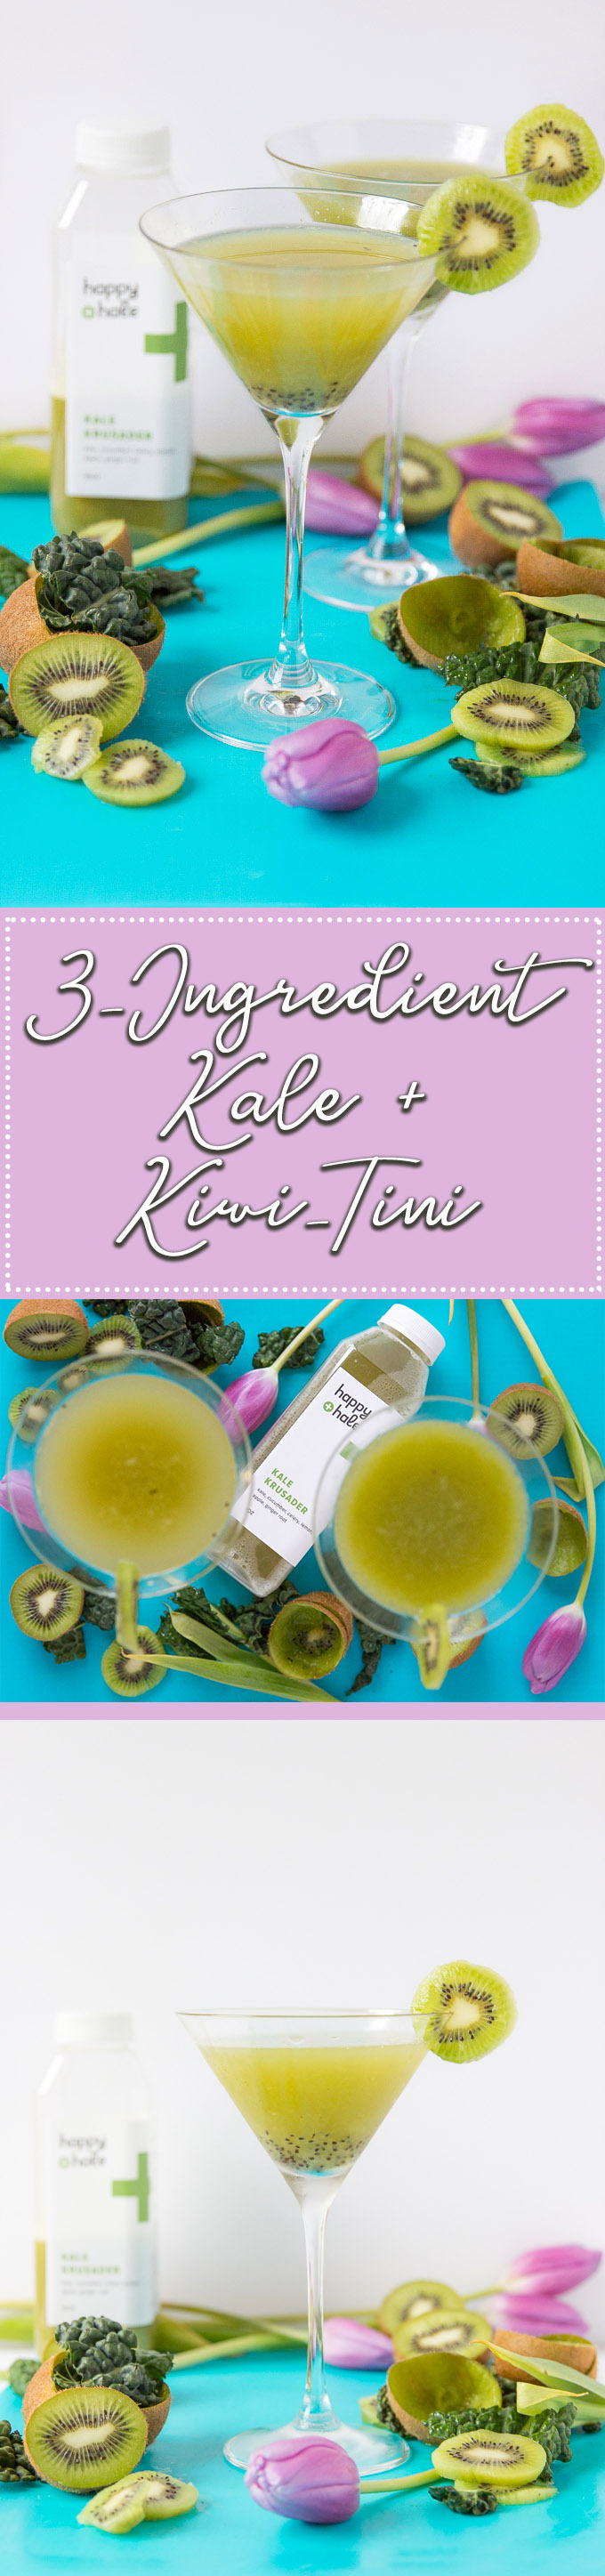 3-ingredient Kale + Kiwi-Tini is a healthier cocktail - recipe from Cheers Years #kalecocktail #healthycocktail